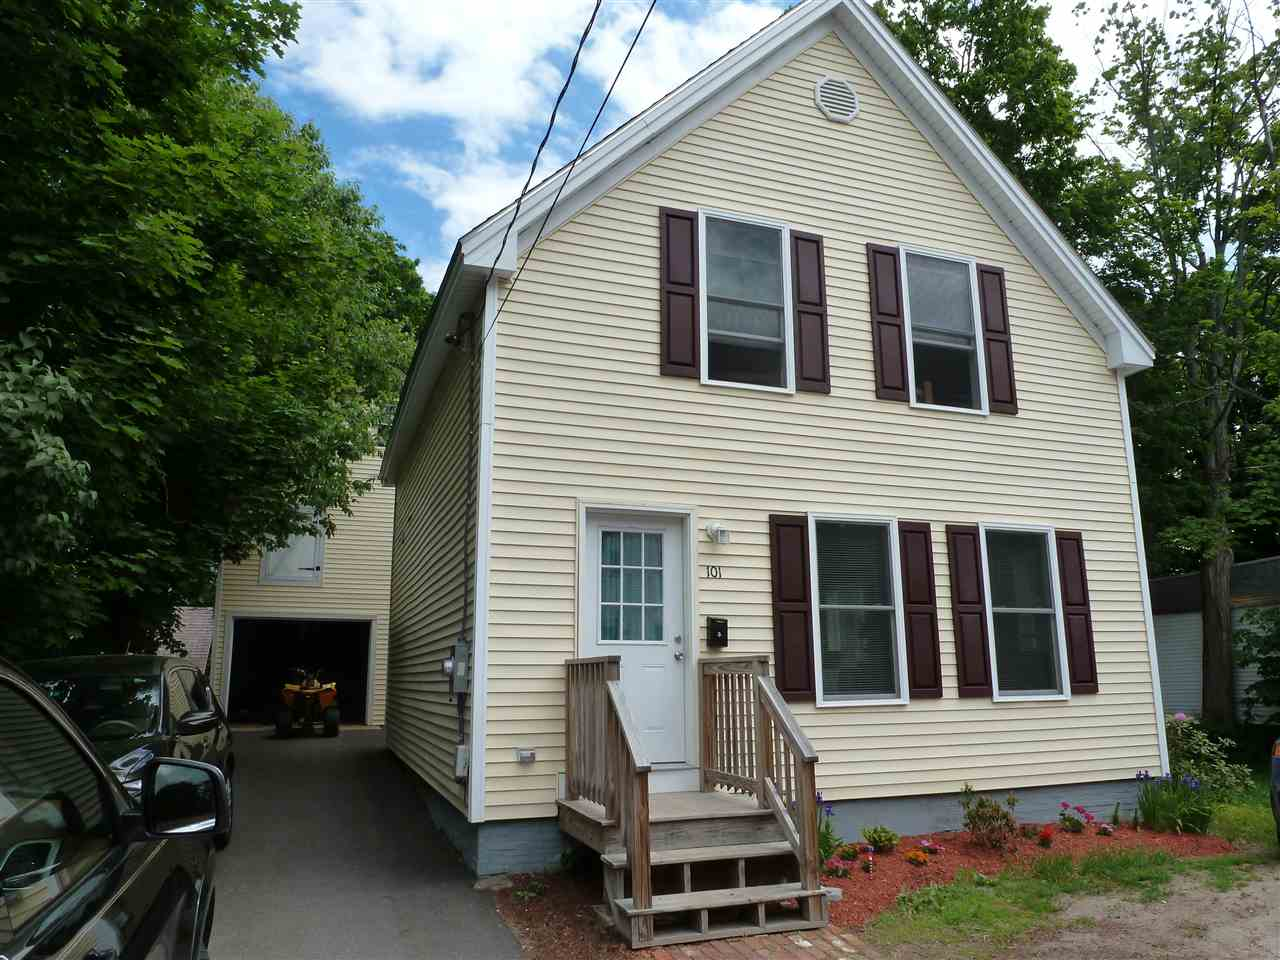 Photo of 101 Messer Street Laconia NH 03246